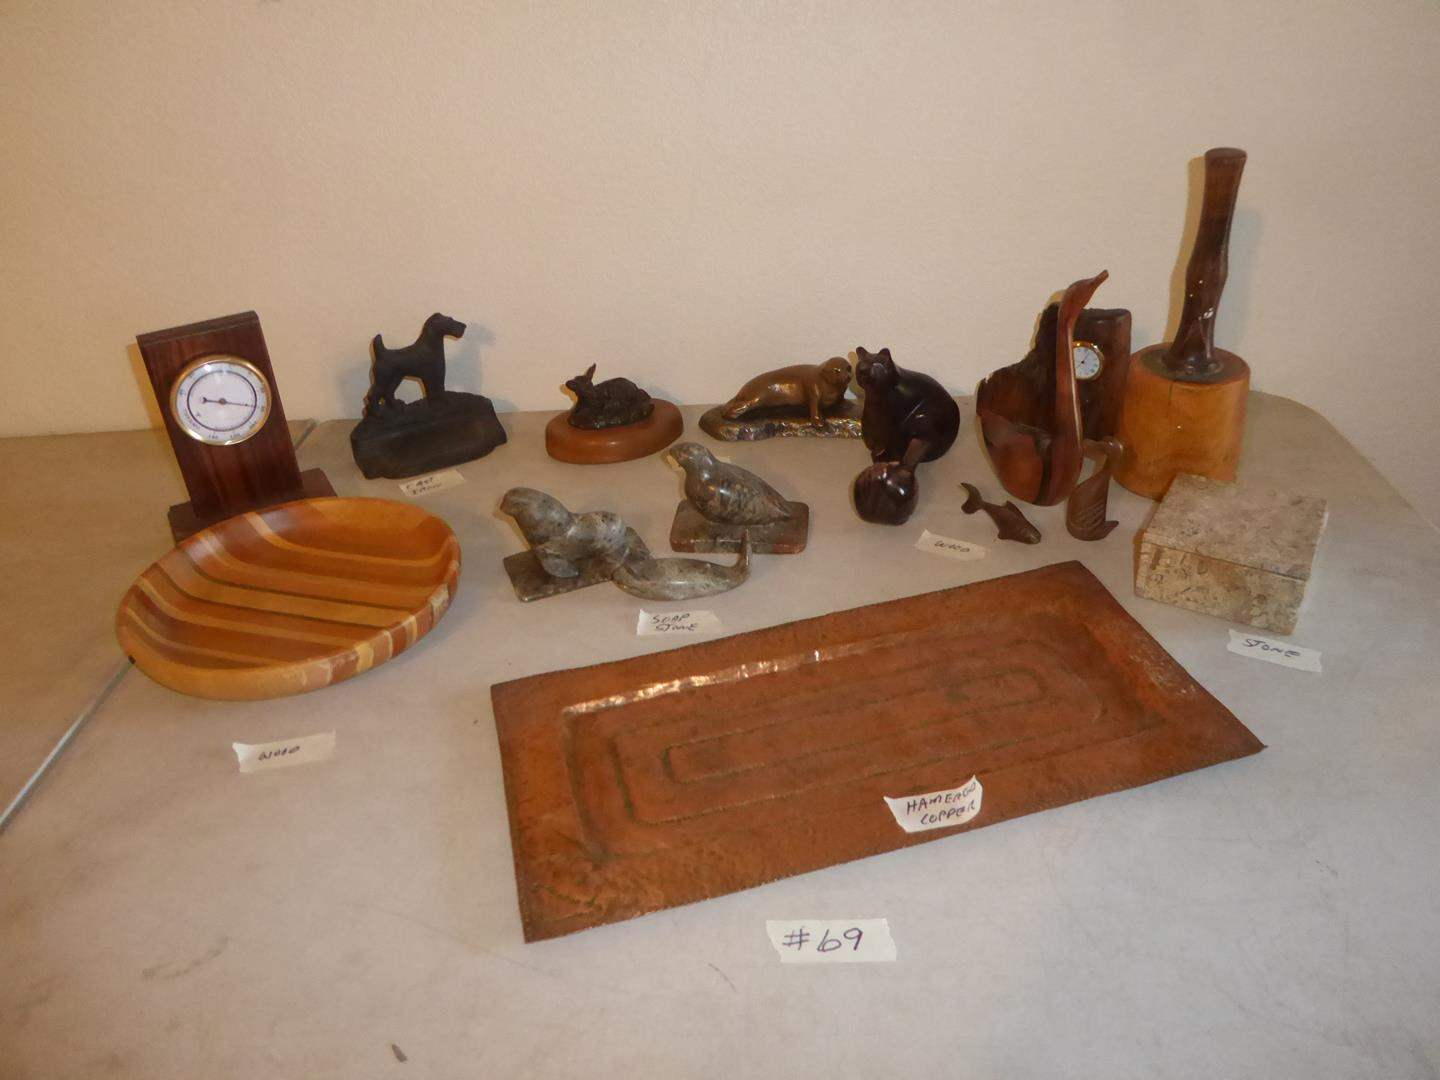 Lot # 69 - Hammered Copper Tray, New Zealand Wooden Bowl, Wooden Thermometer, Cast Iron, Soap Stone, Bronze & Wooden Figurines (main image)